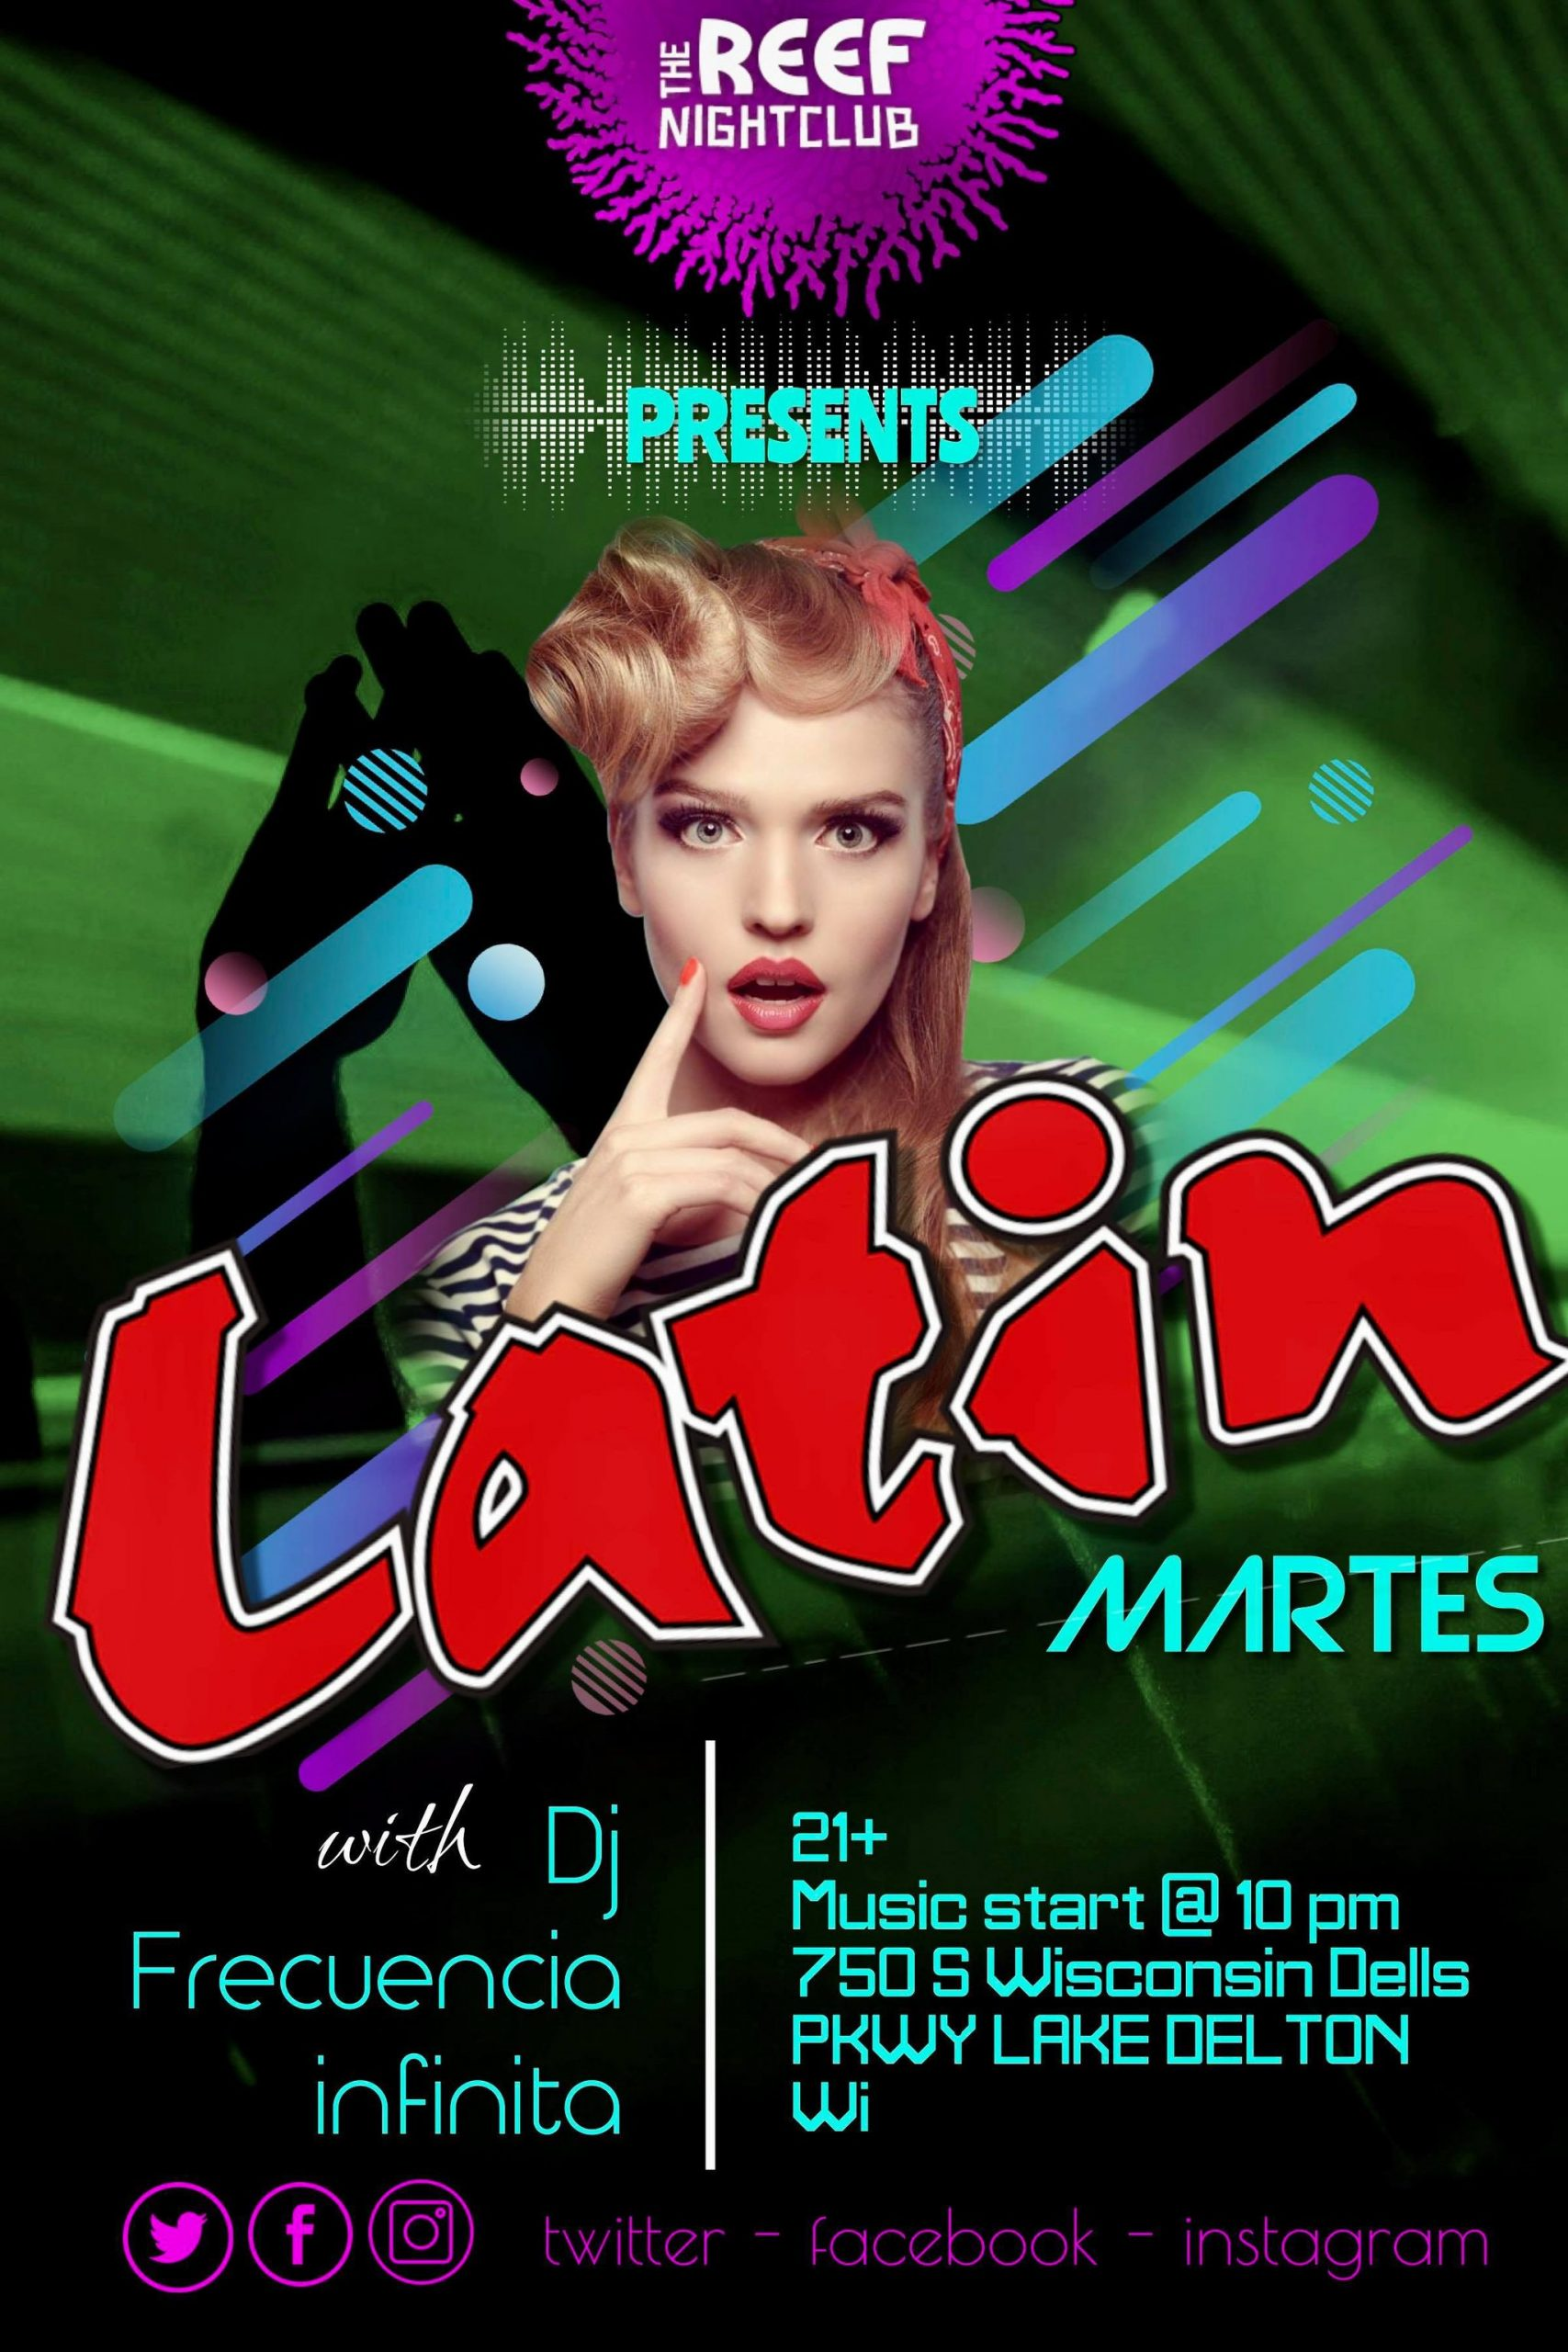 Latin Night at The Reef Night Club